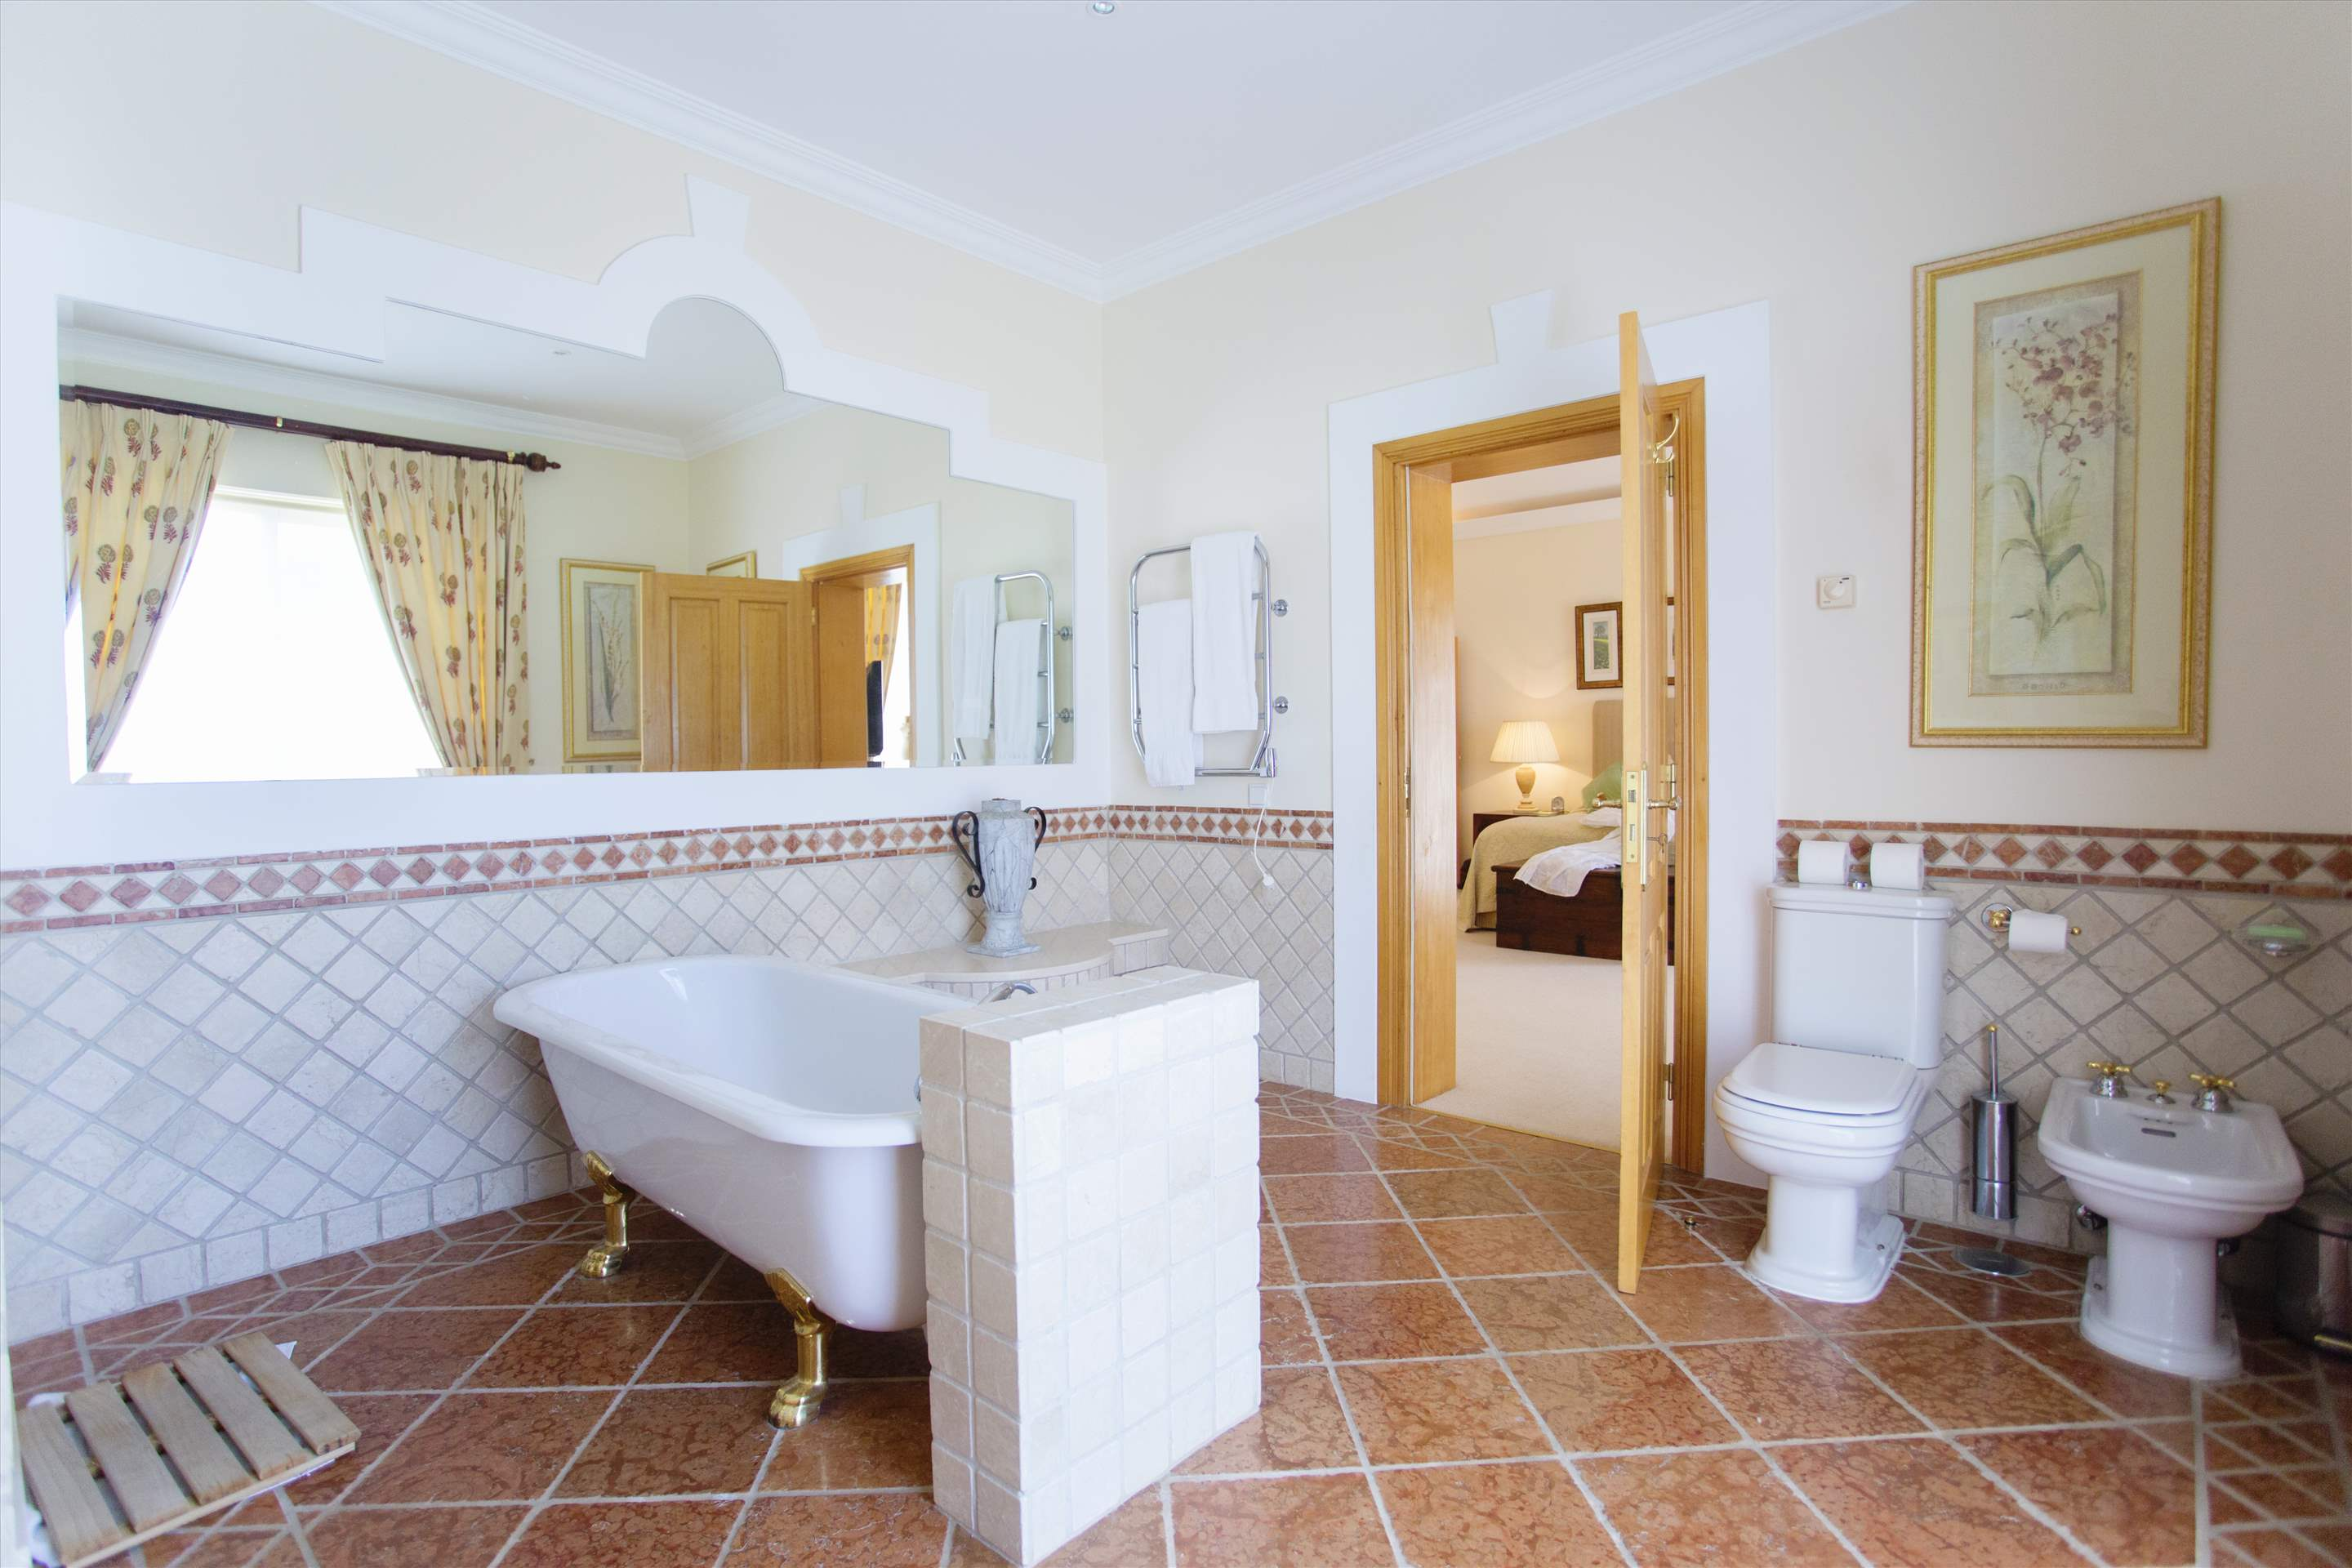 Villa Palmeiras Altas, 5 bedroom villa in Quinta do Lago, Algarve Photo #29